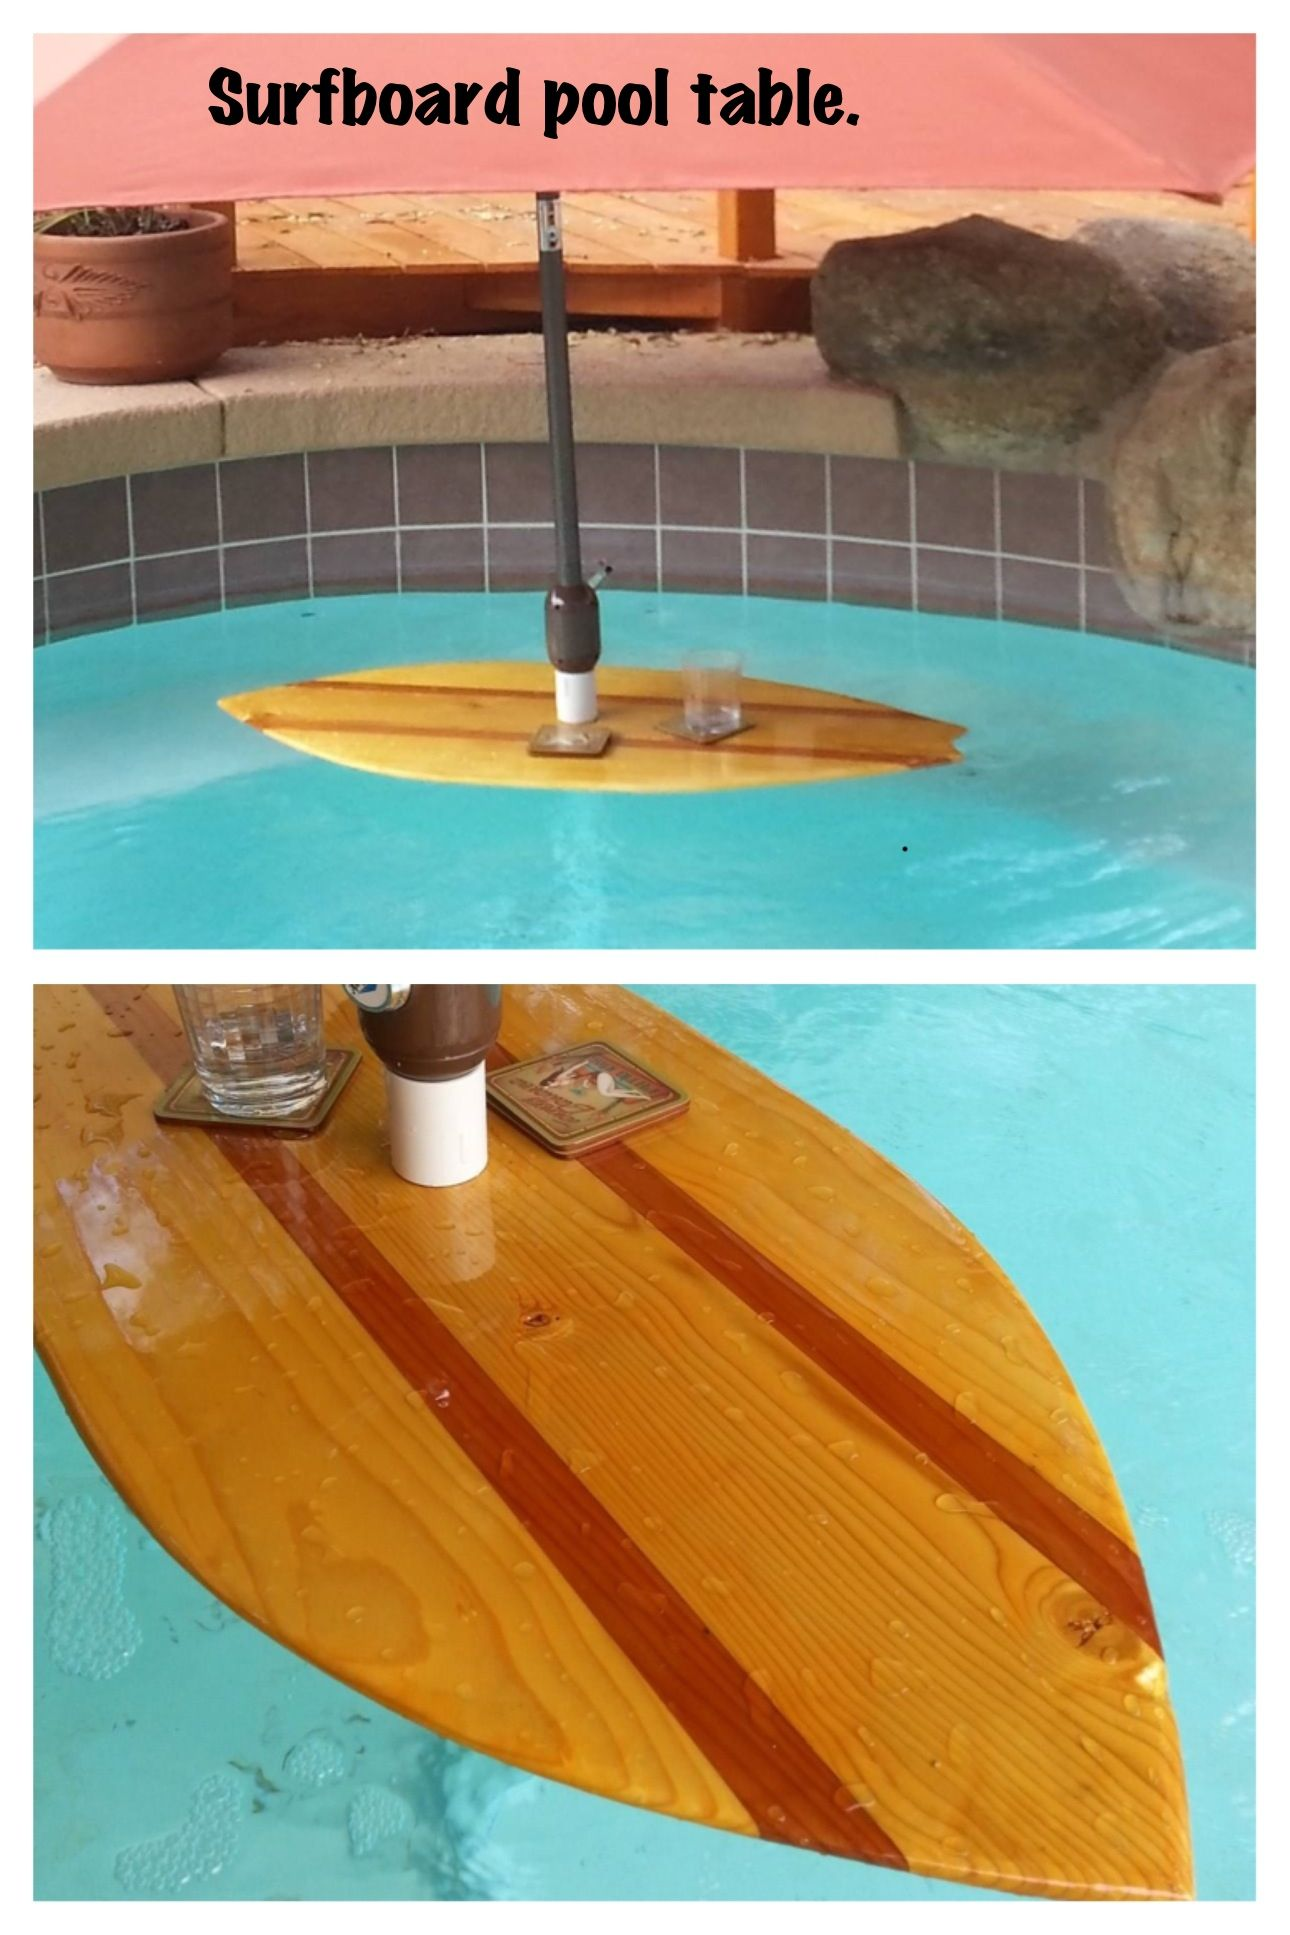 A Vintage Style Surfboard Pool Table And Umbrella Stand With A Concrete Filled Pvc Base Diy